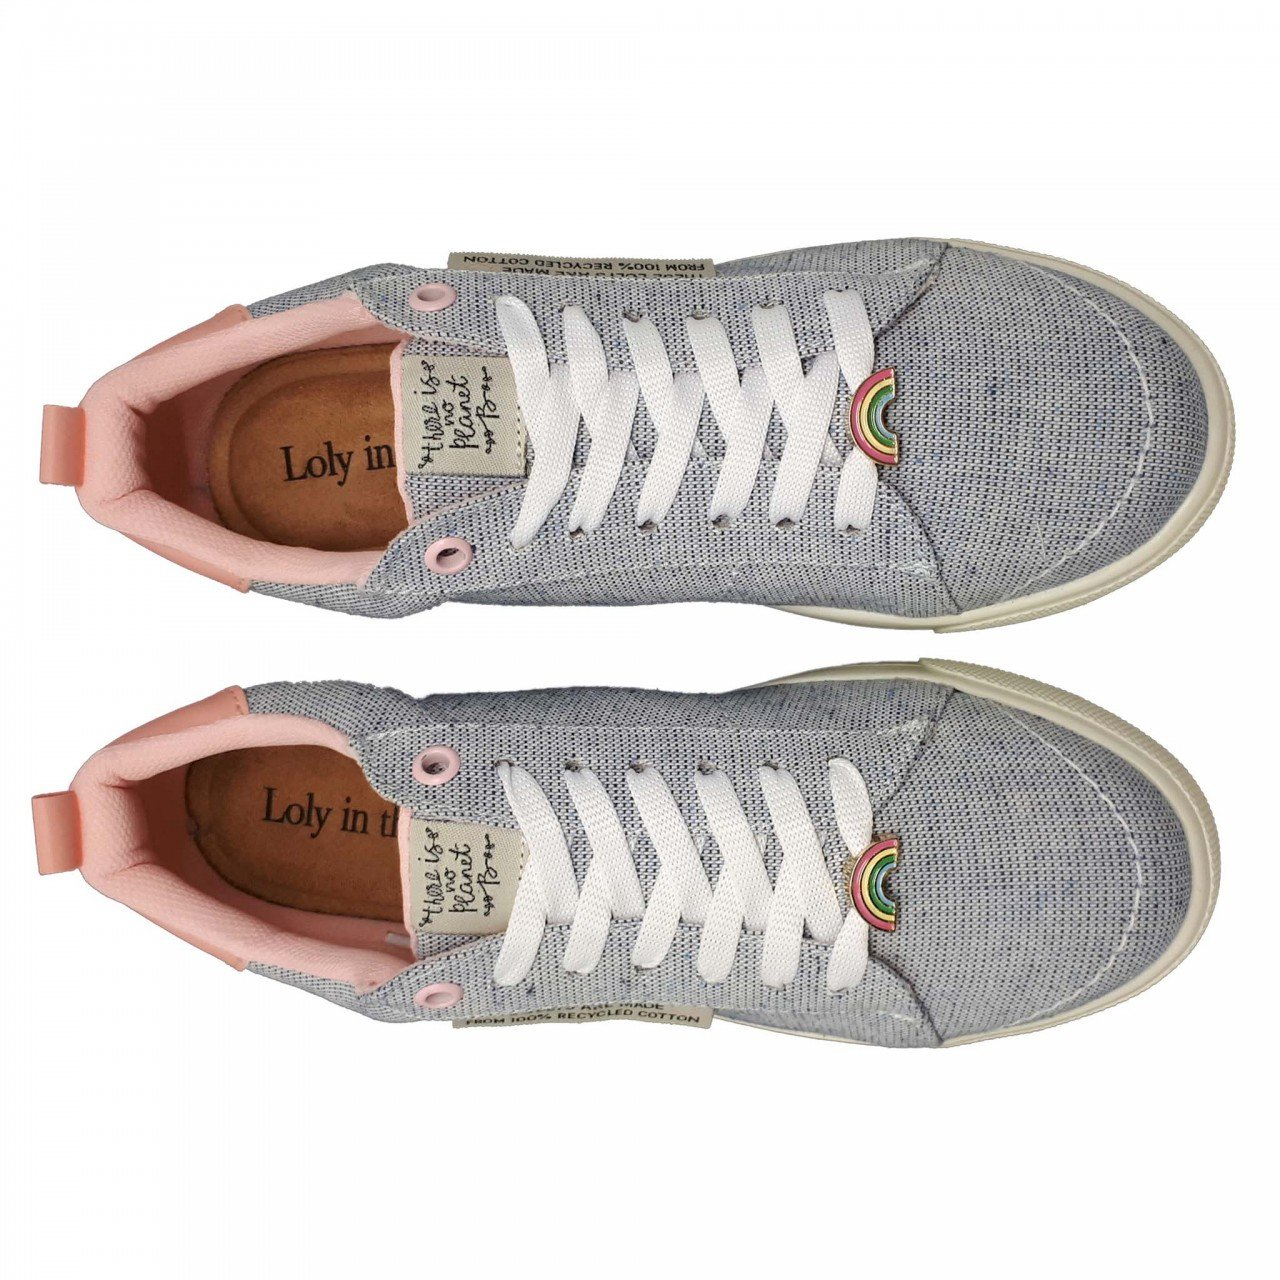 Tenis azul con rosa para mujer Glory Loly in the sky